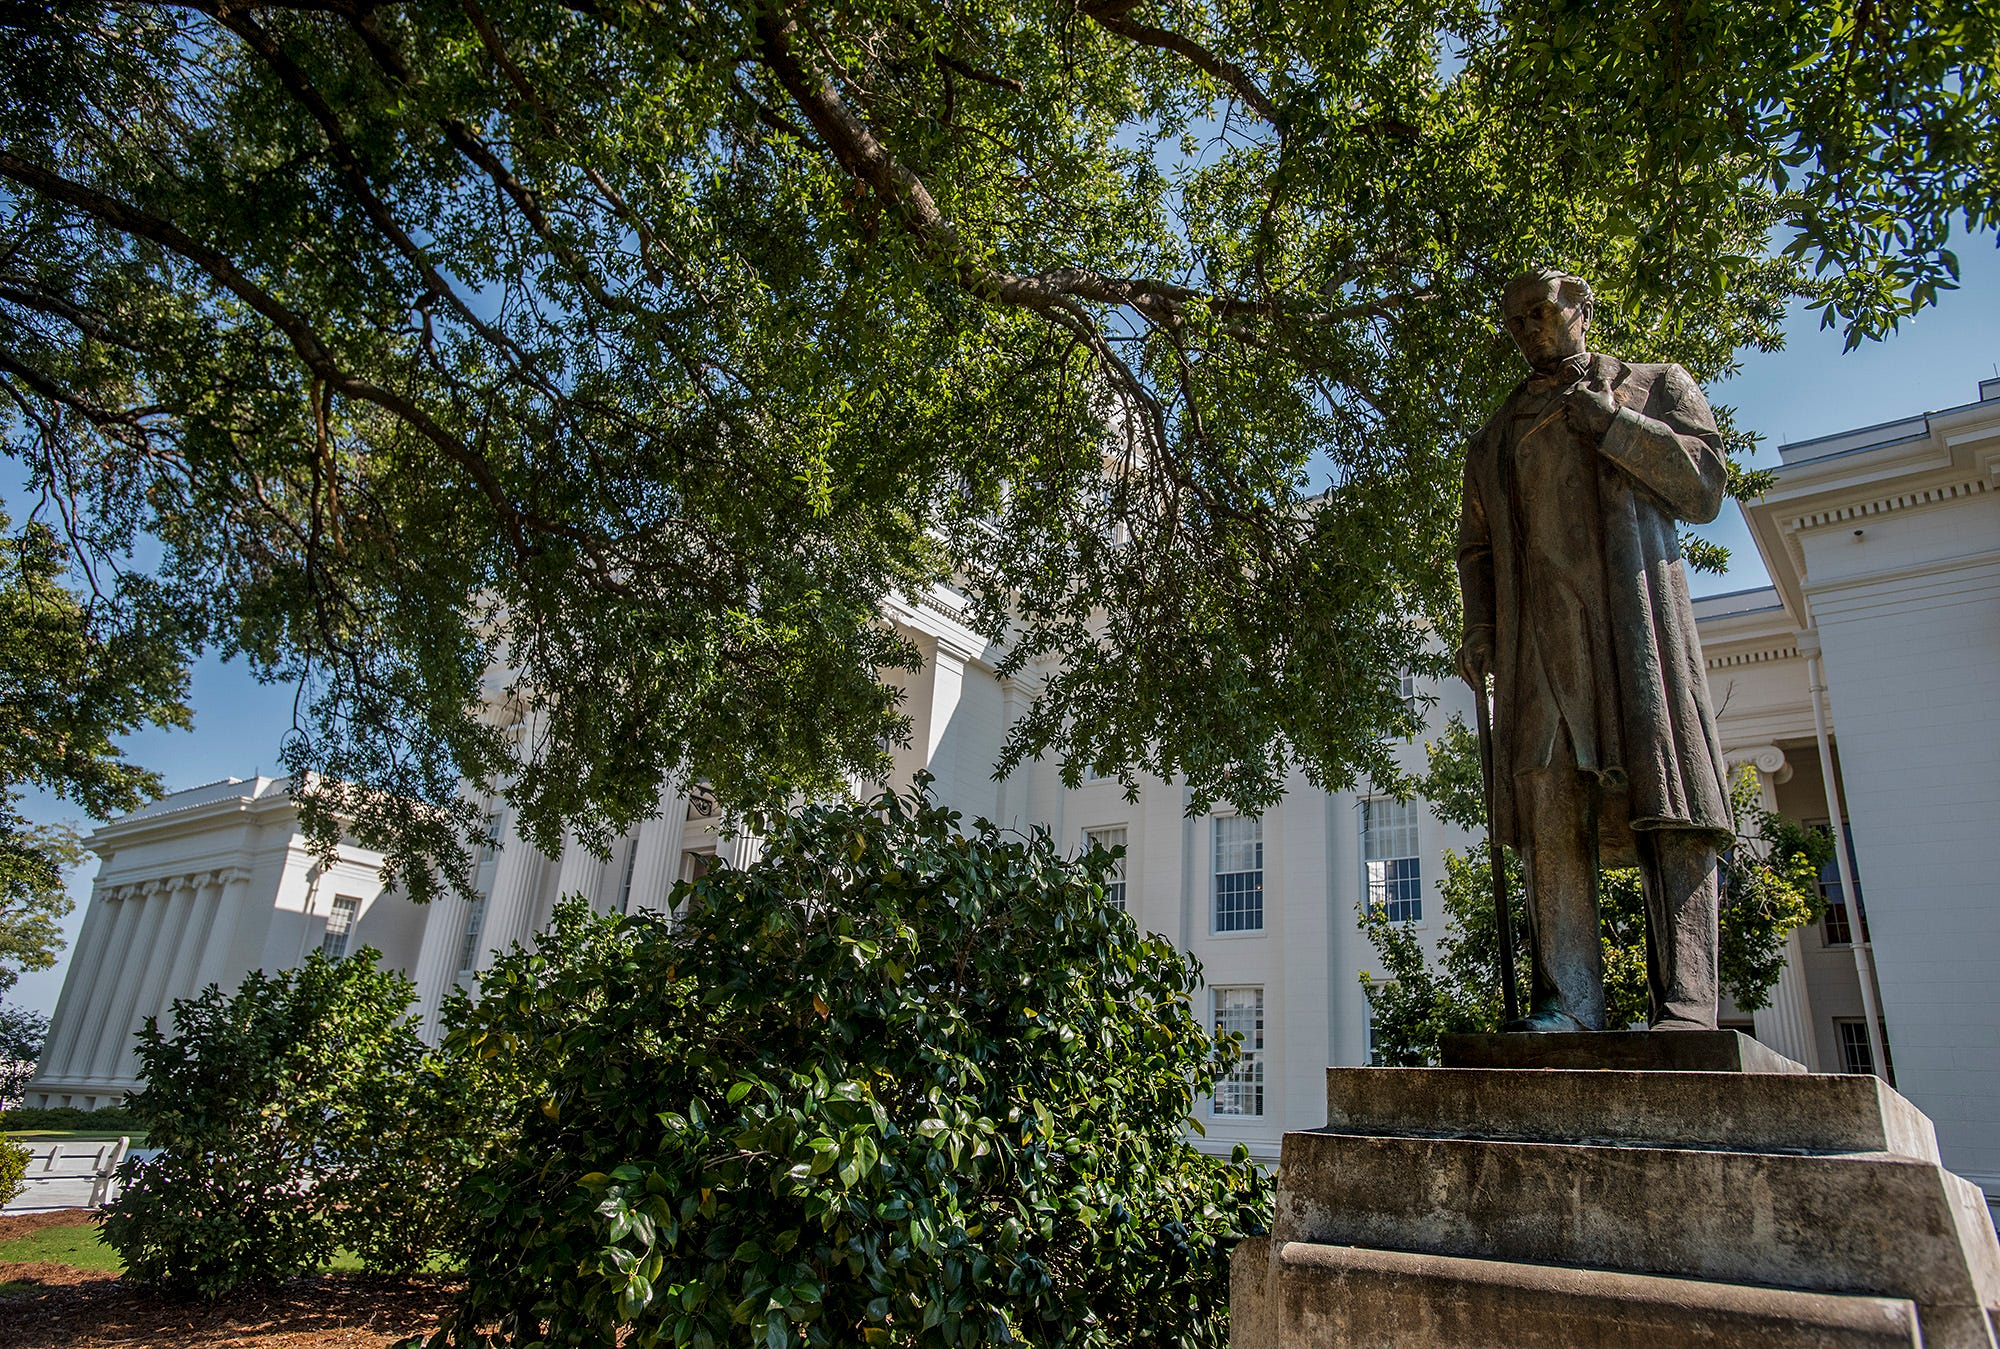 The statue of Dr. James Marion Sims sits in the shade of an old oak tree on the grounds of the state capitol building in Montgomery, Ala. on Friday September 29, 2017.